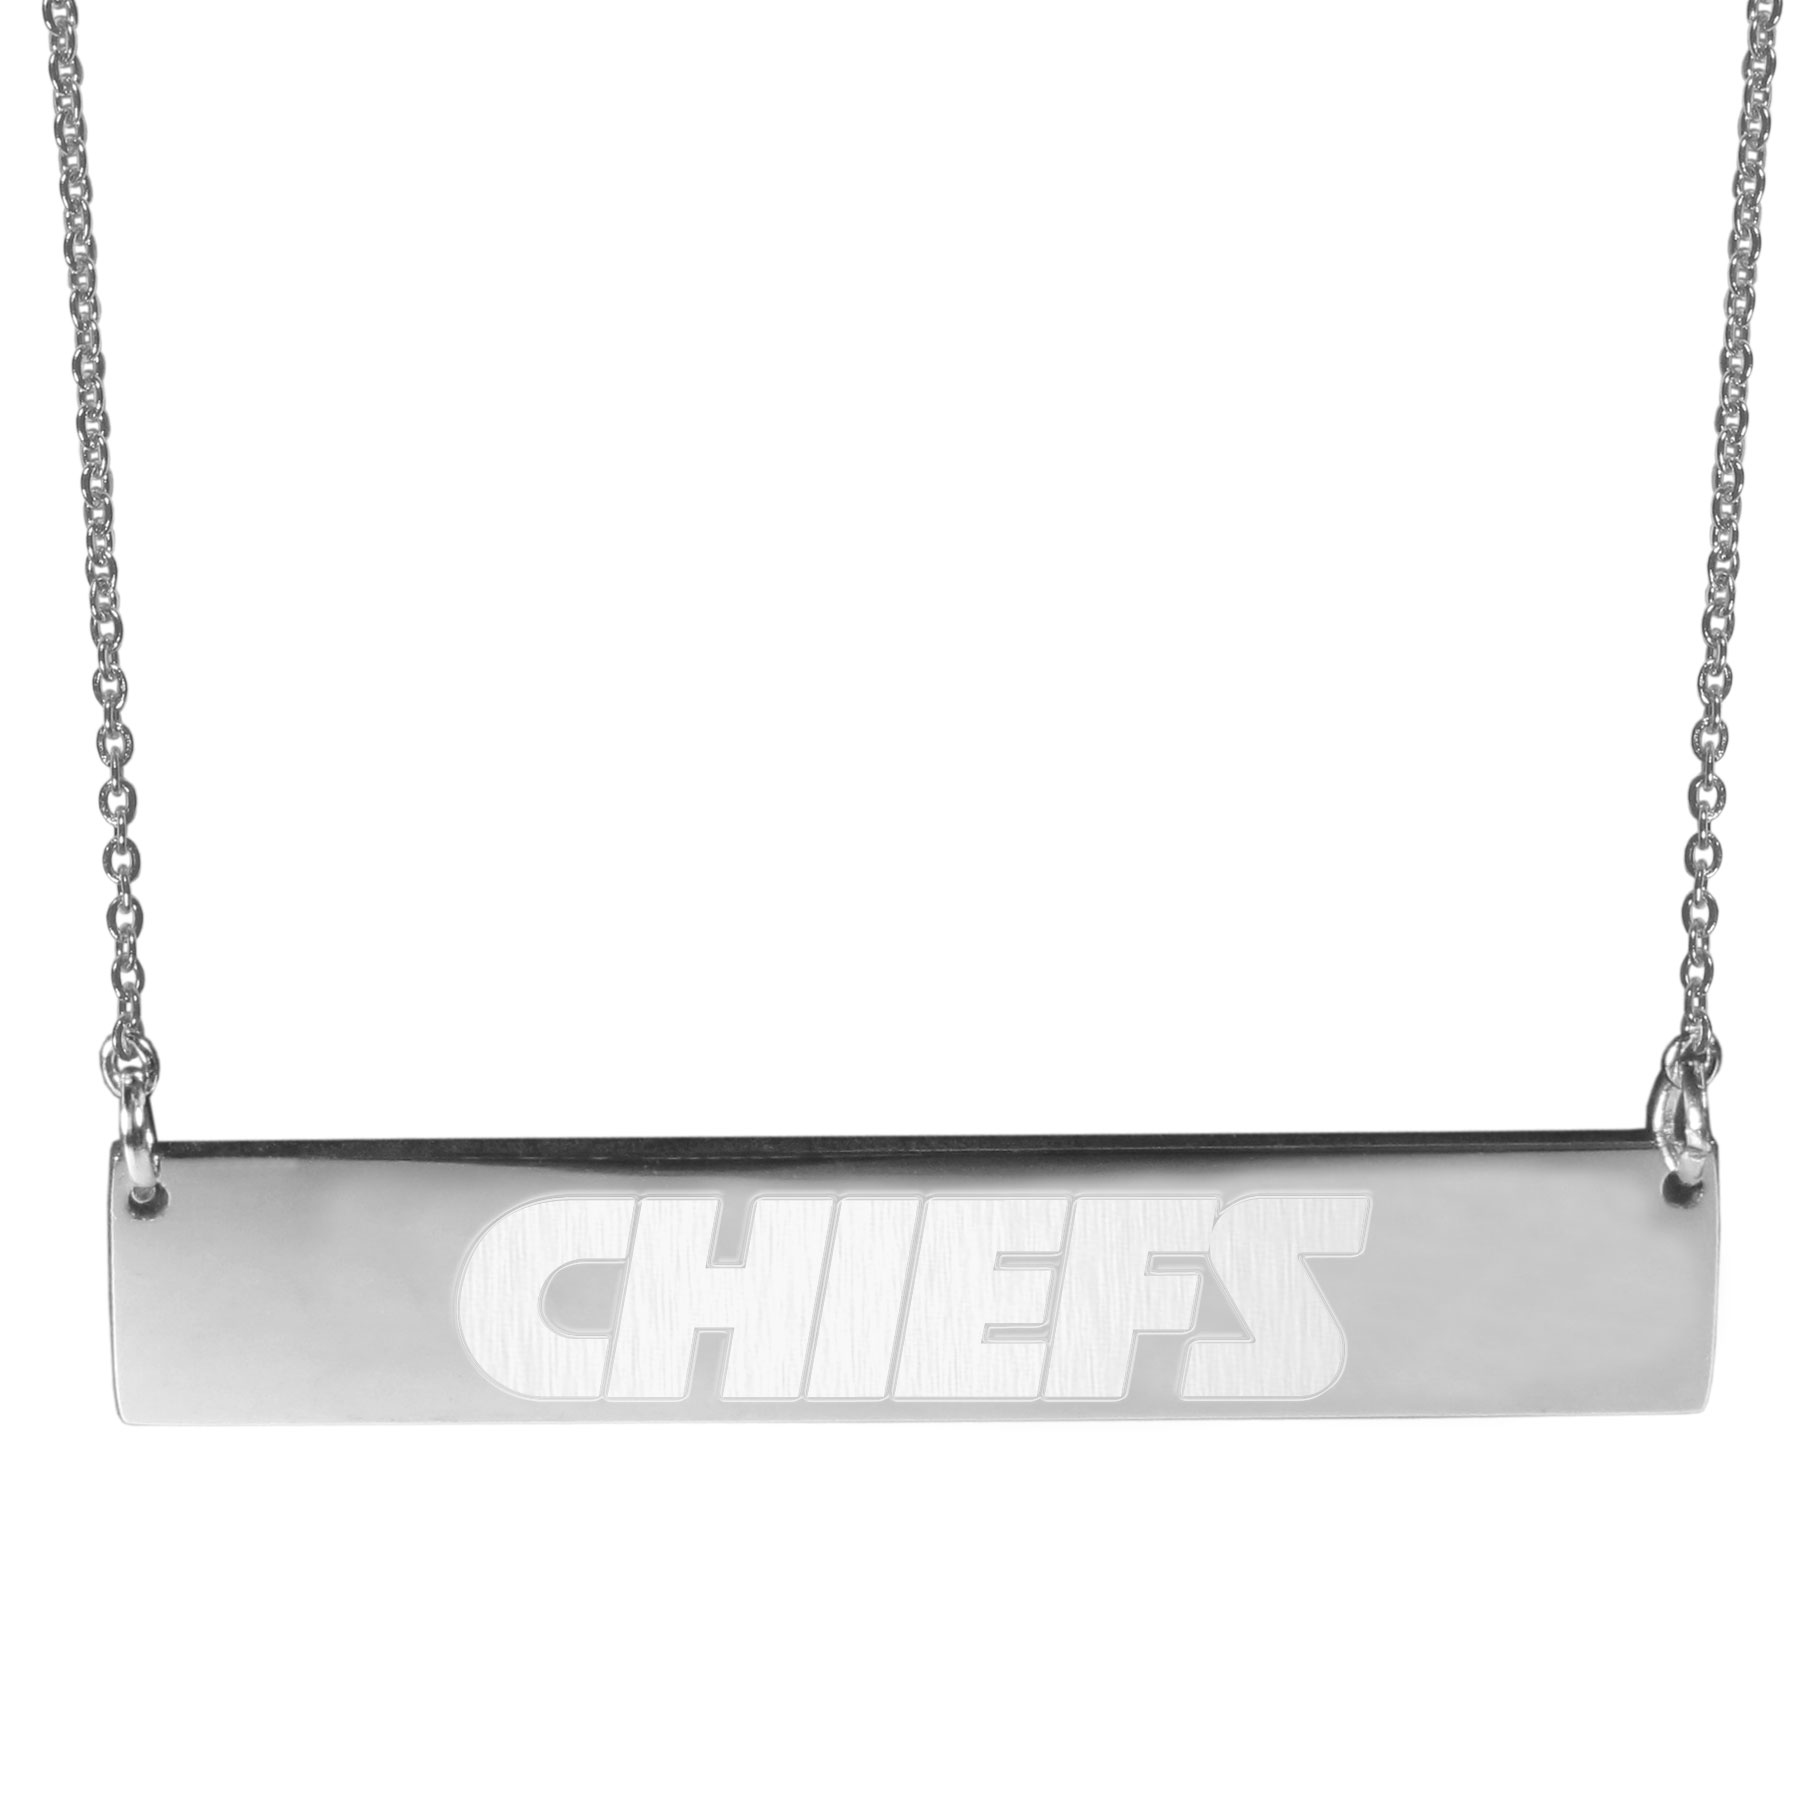 Kansas City Chiefs Bar Necklace - Simply beautiful Kansas City Chiefs bar necklace on a 20 inch link chain with 2 inch adjustable extender. This light-weight bar necklace has a stylish silver colored finish with the team name expertly etched on the 1.5 inch bar. Every female  fan will enjoy this contempory fashion accessory.